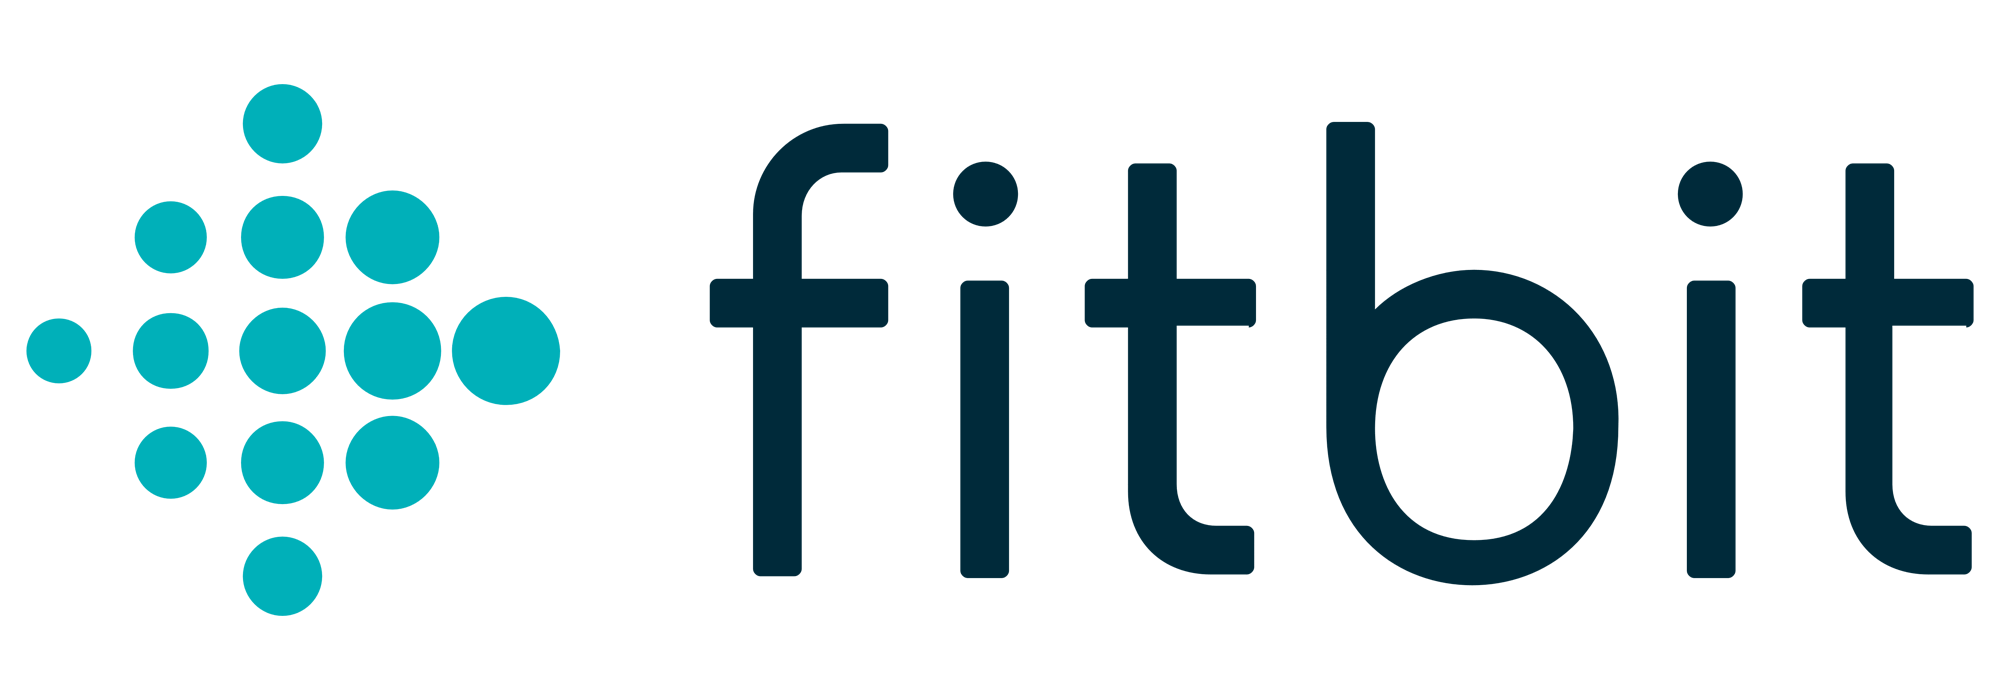 Fitbit Kortingscode Black Friday 2019